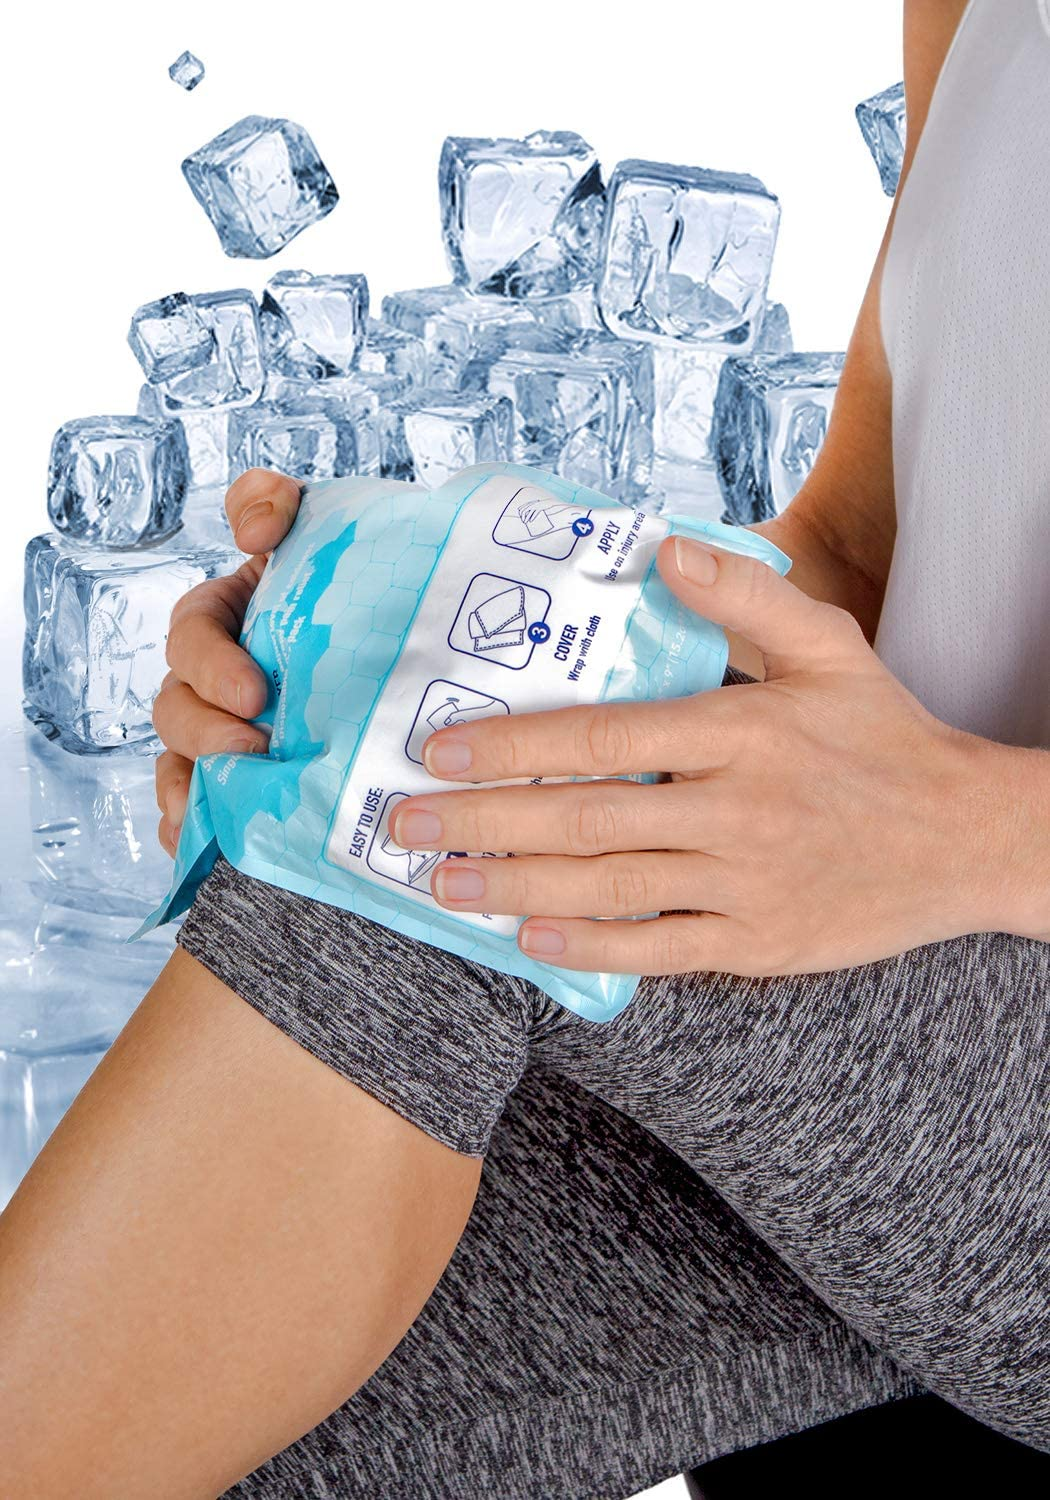 ICEWRAPS Instant Cold Pack - Emergency Disposable Ice Packs for Injuries, Sports, Camping or Hiking First Aid Kit (24 Cold Packs): Health & Personal Care